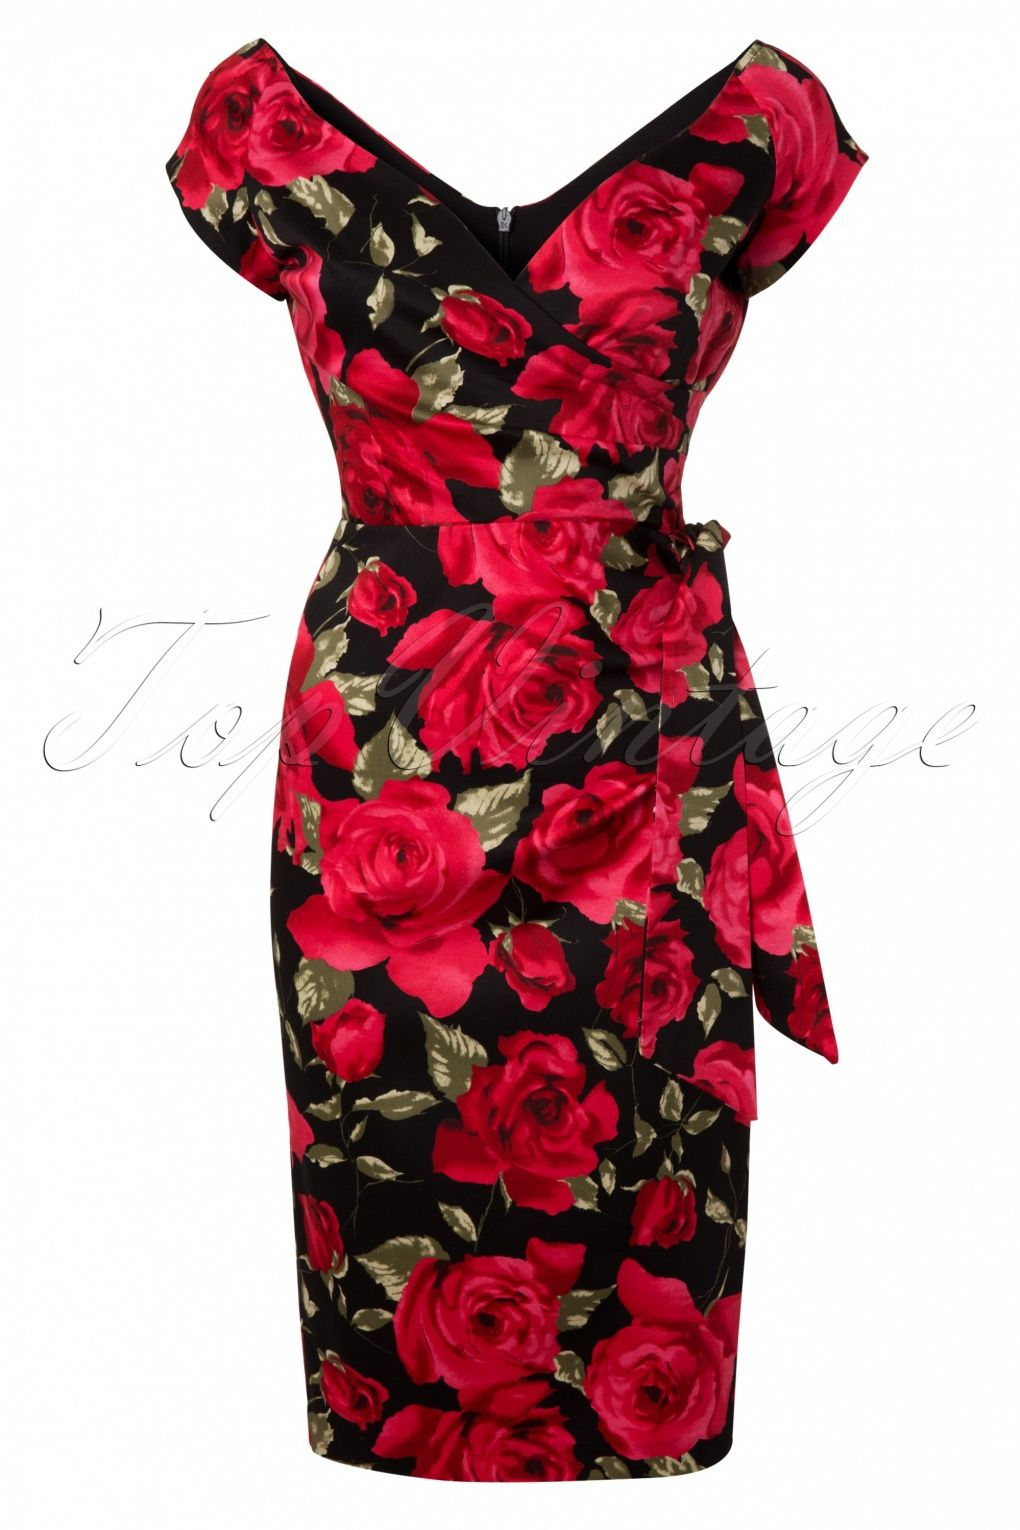 So Couture - Hourglass Sorento Black Floral Vintage Pencil dress #topvintage